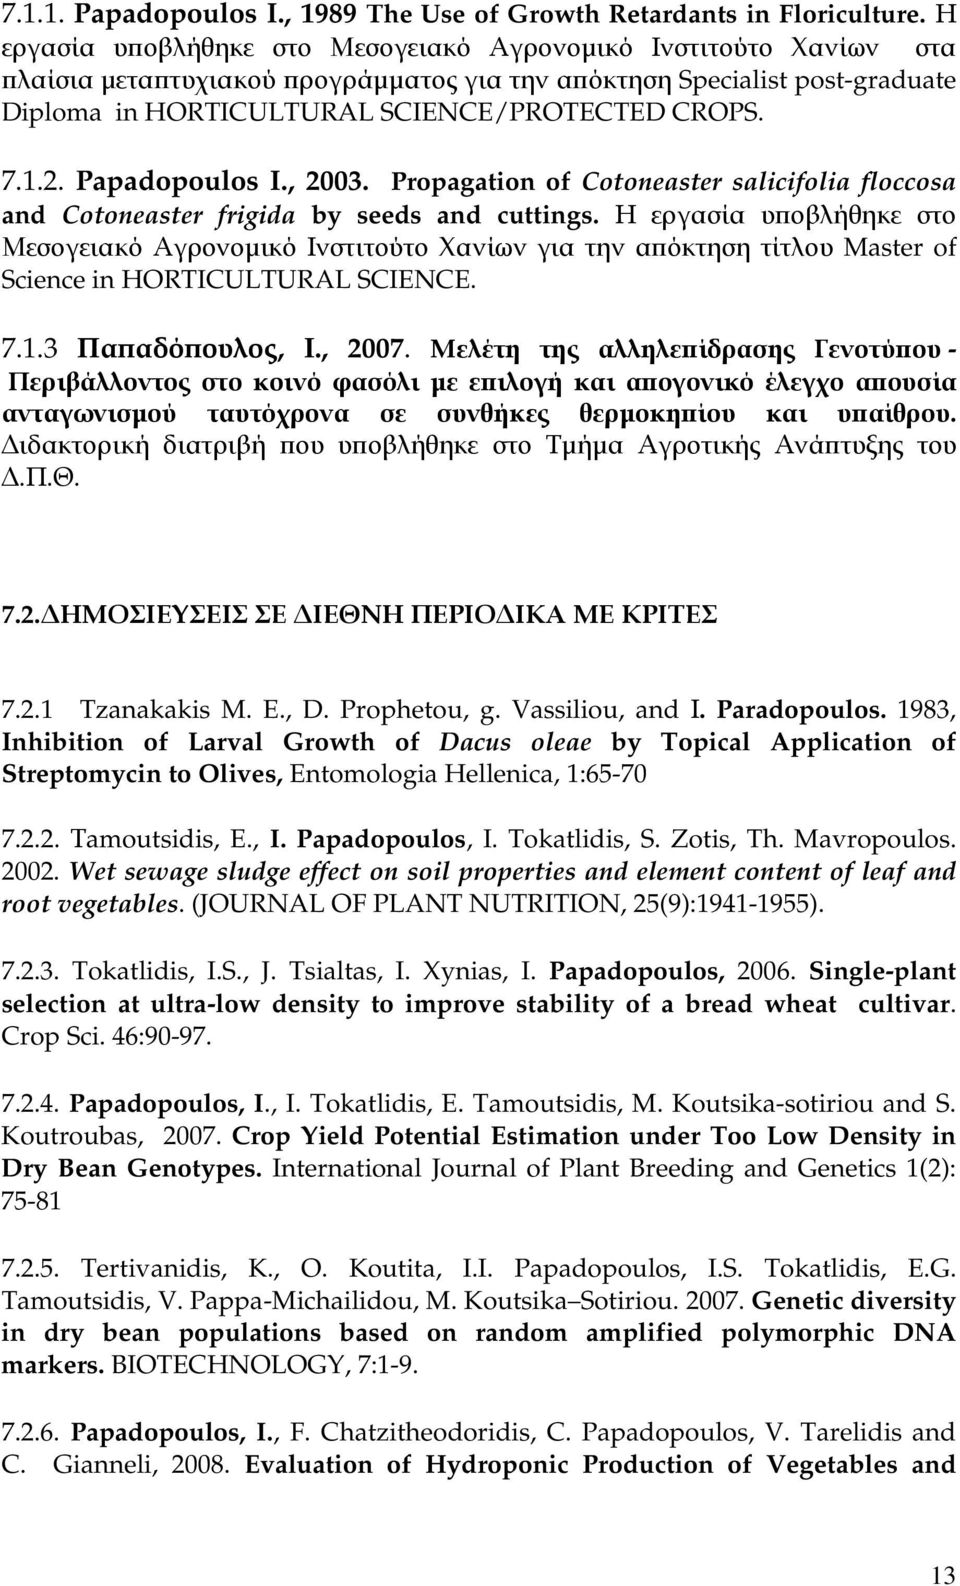 Papadopoulos I., 2003. Propagation of Cotoneaster salicifolia floccosa and Cotoneaster frigida by seeds and cuttings.